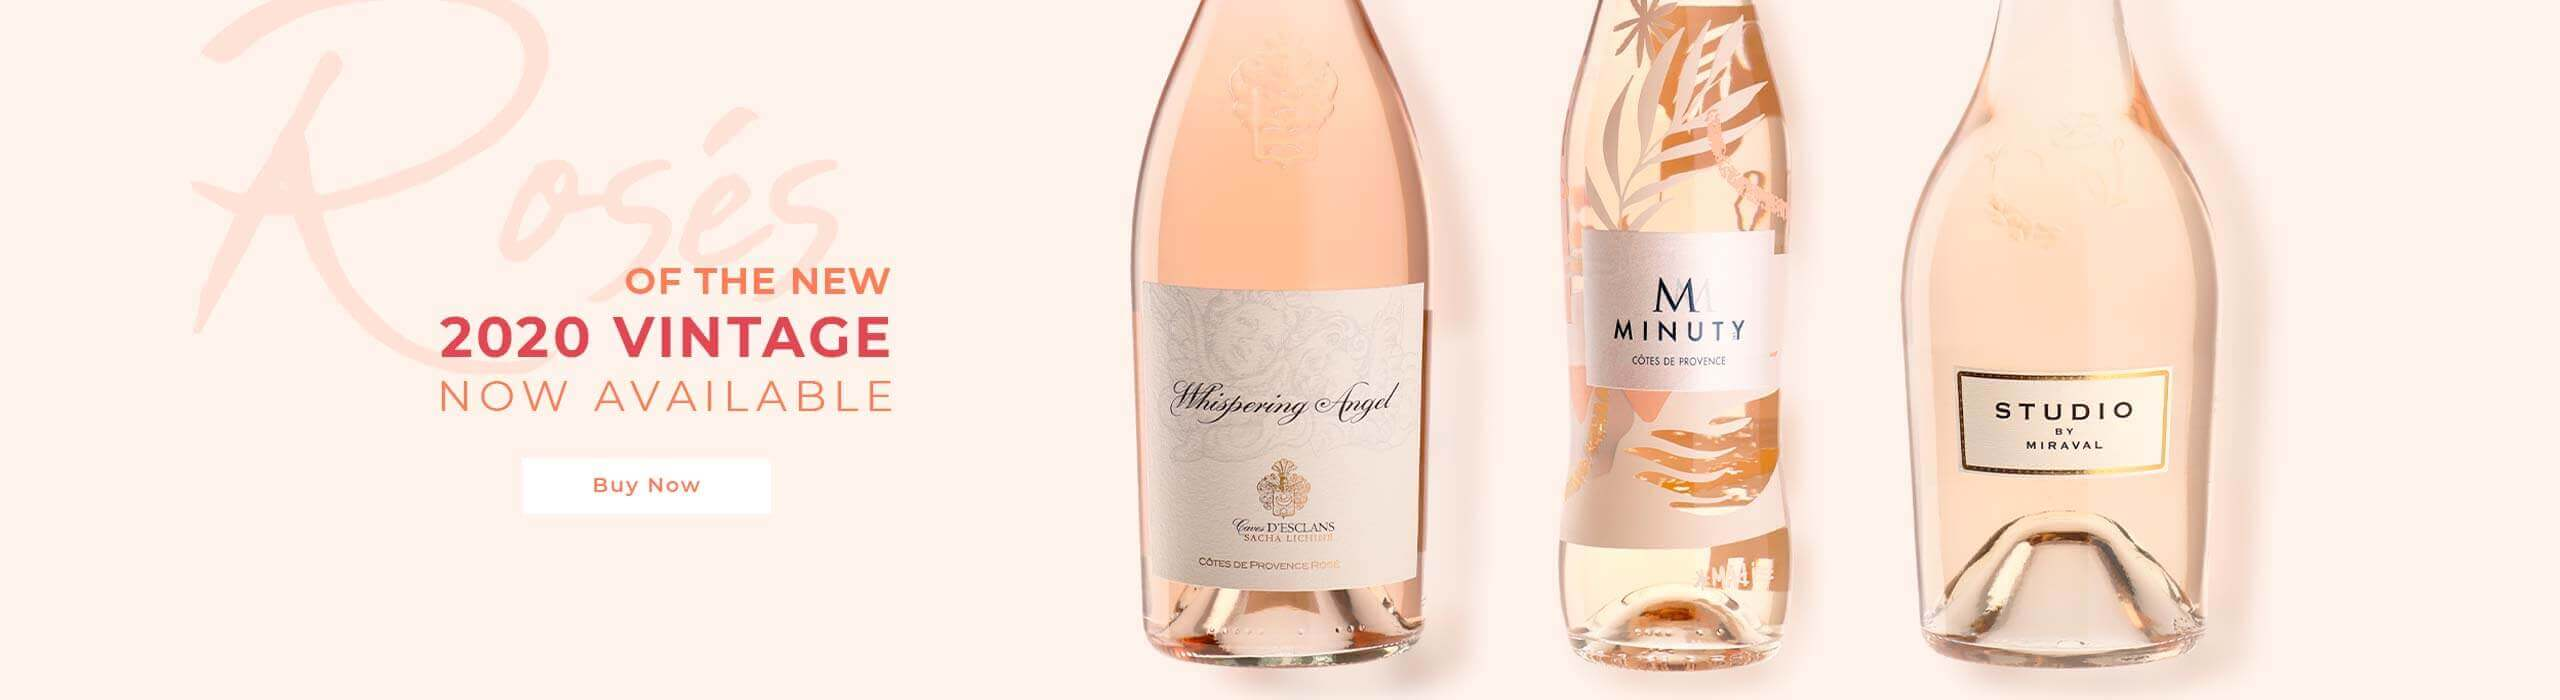 Rosés: discover the new 2020 vintage!